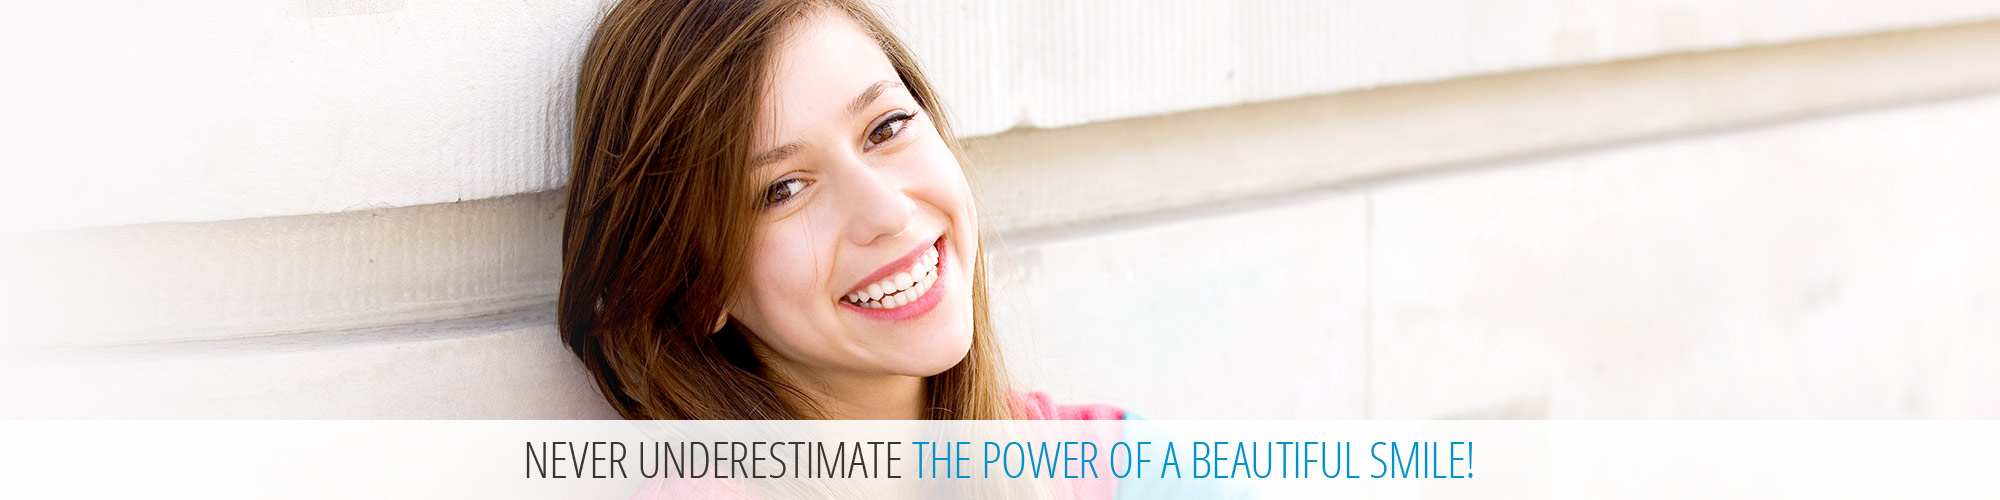 Beautiful Smiles with Orthodontic Care | Teen Smile